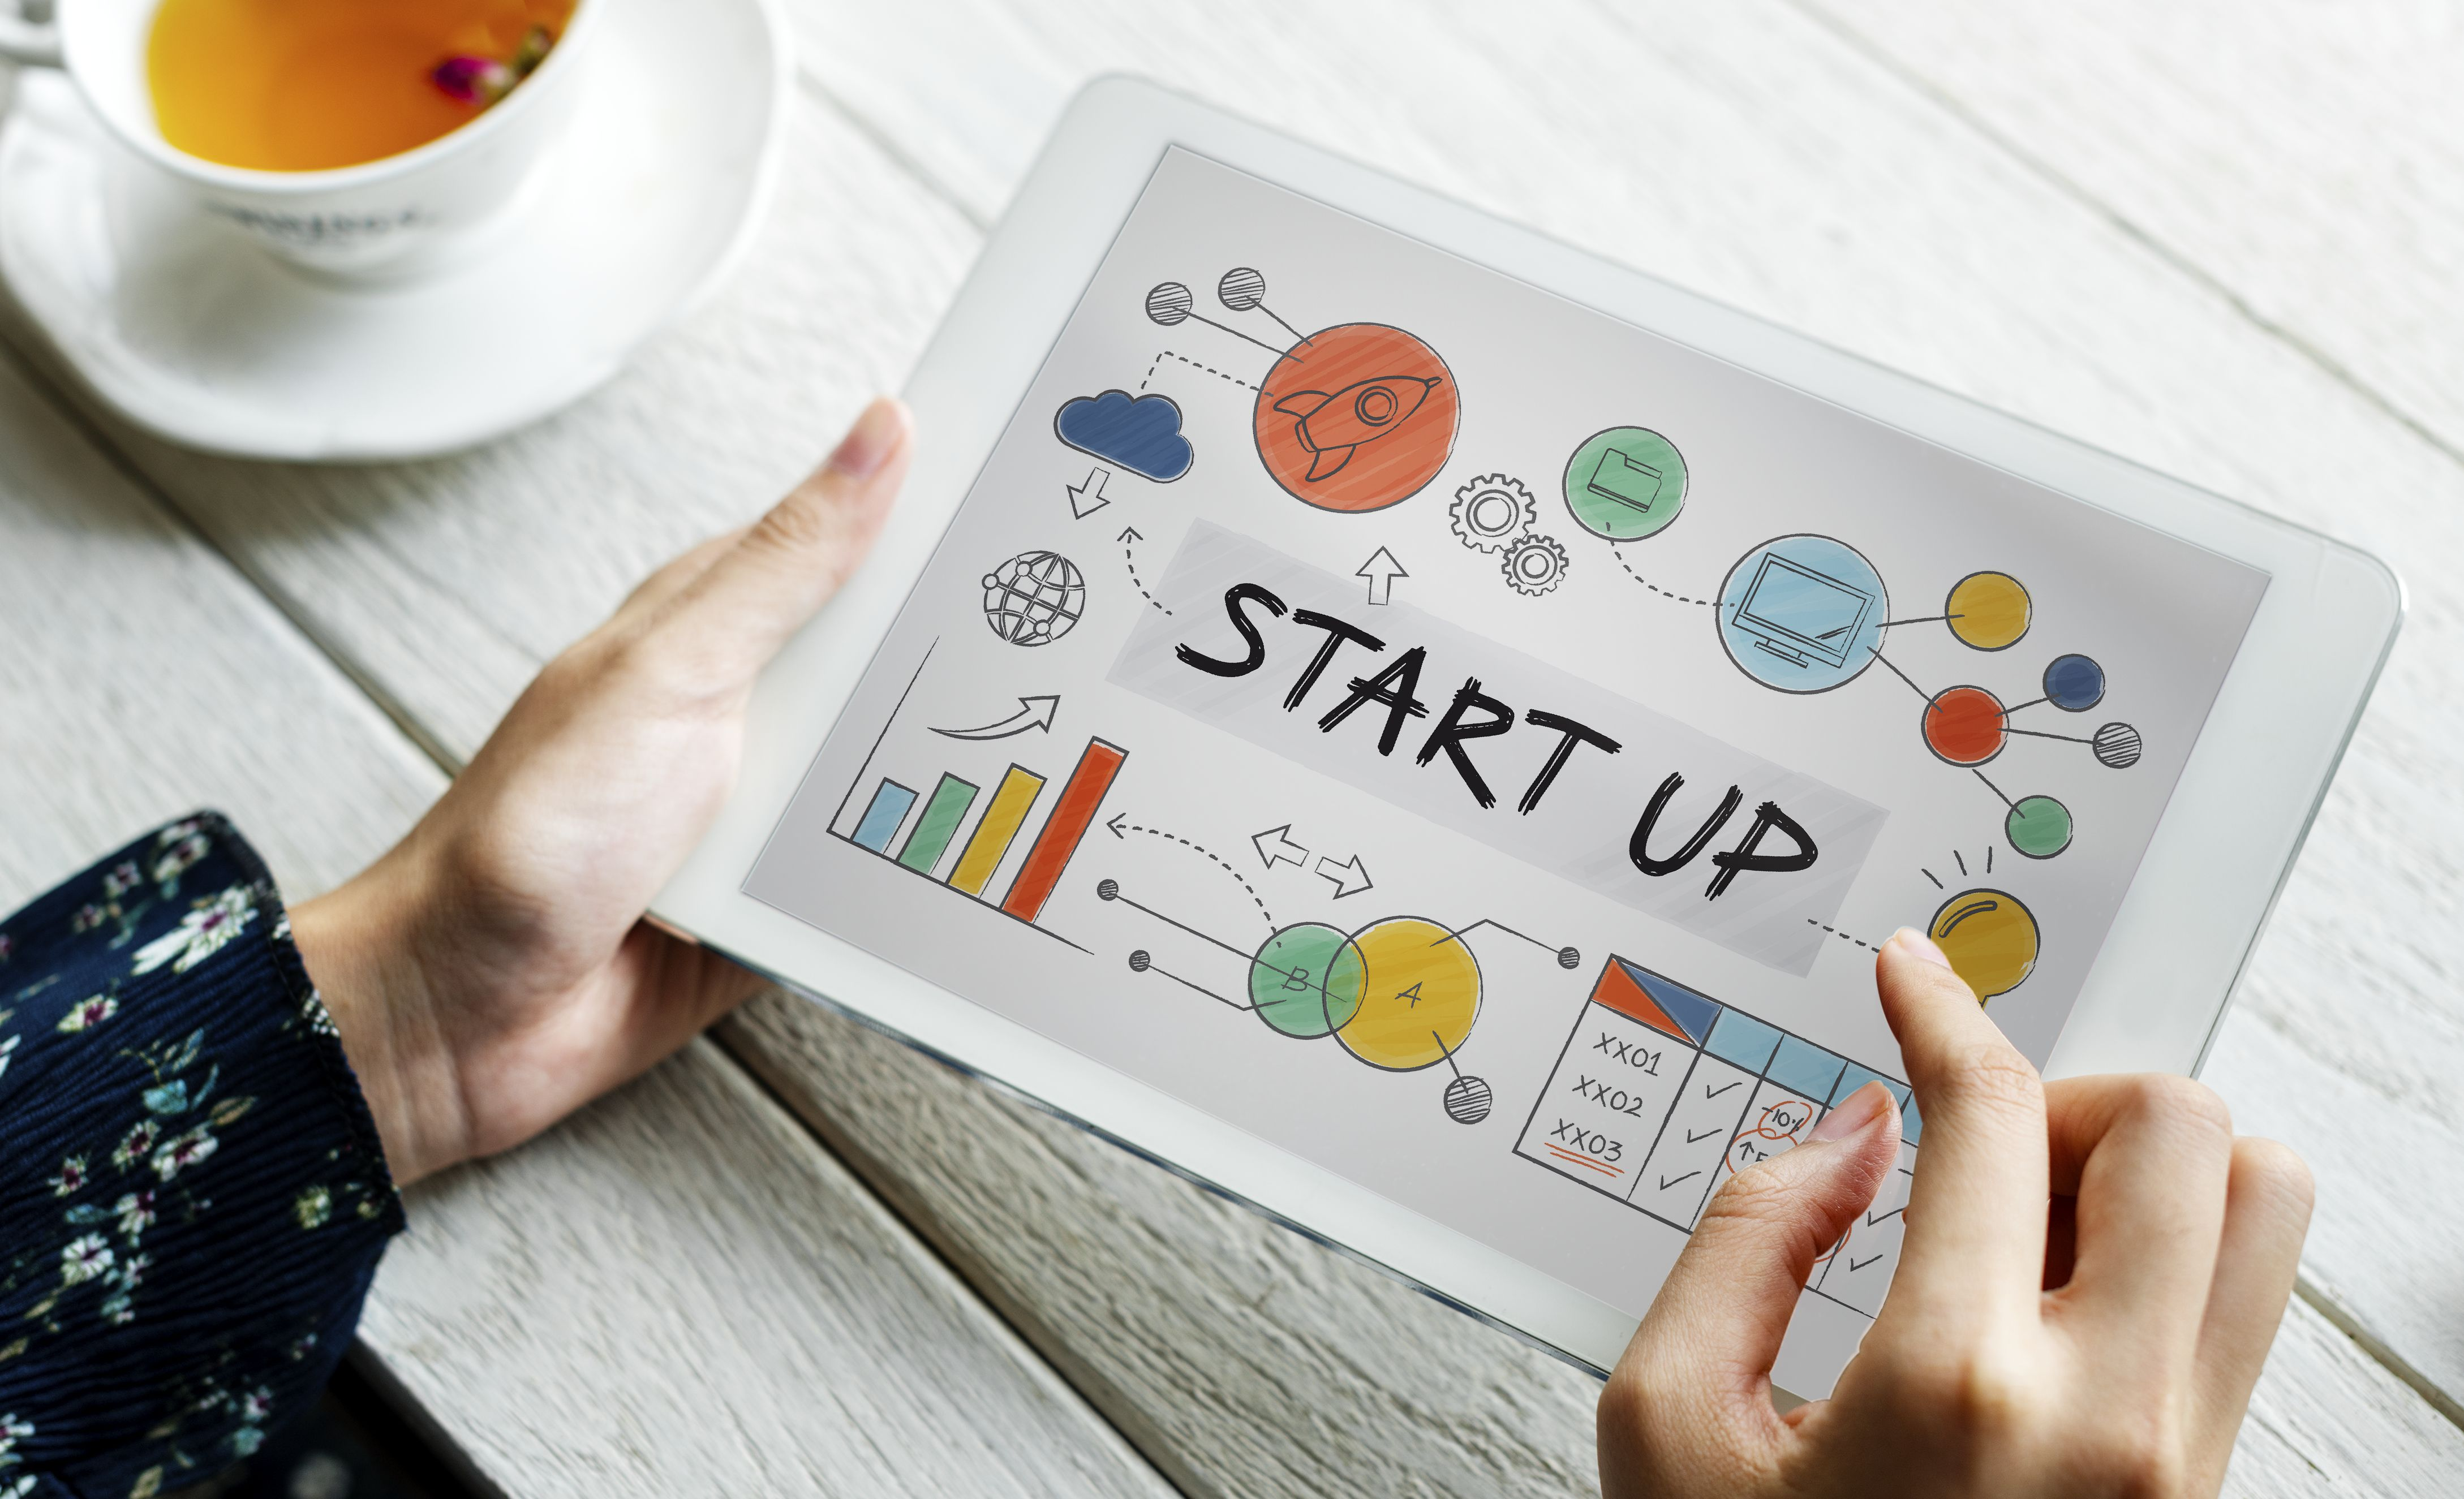 The Growth of Startups in Indonesia